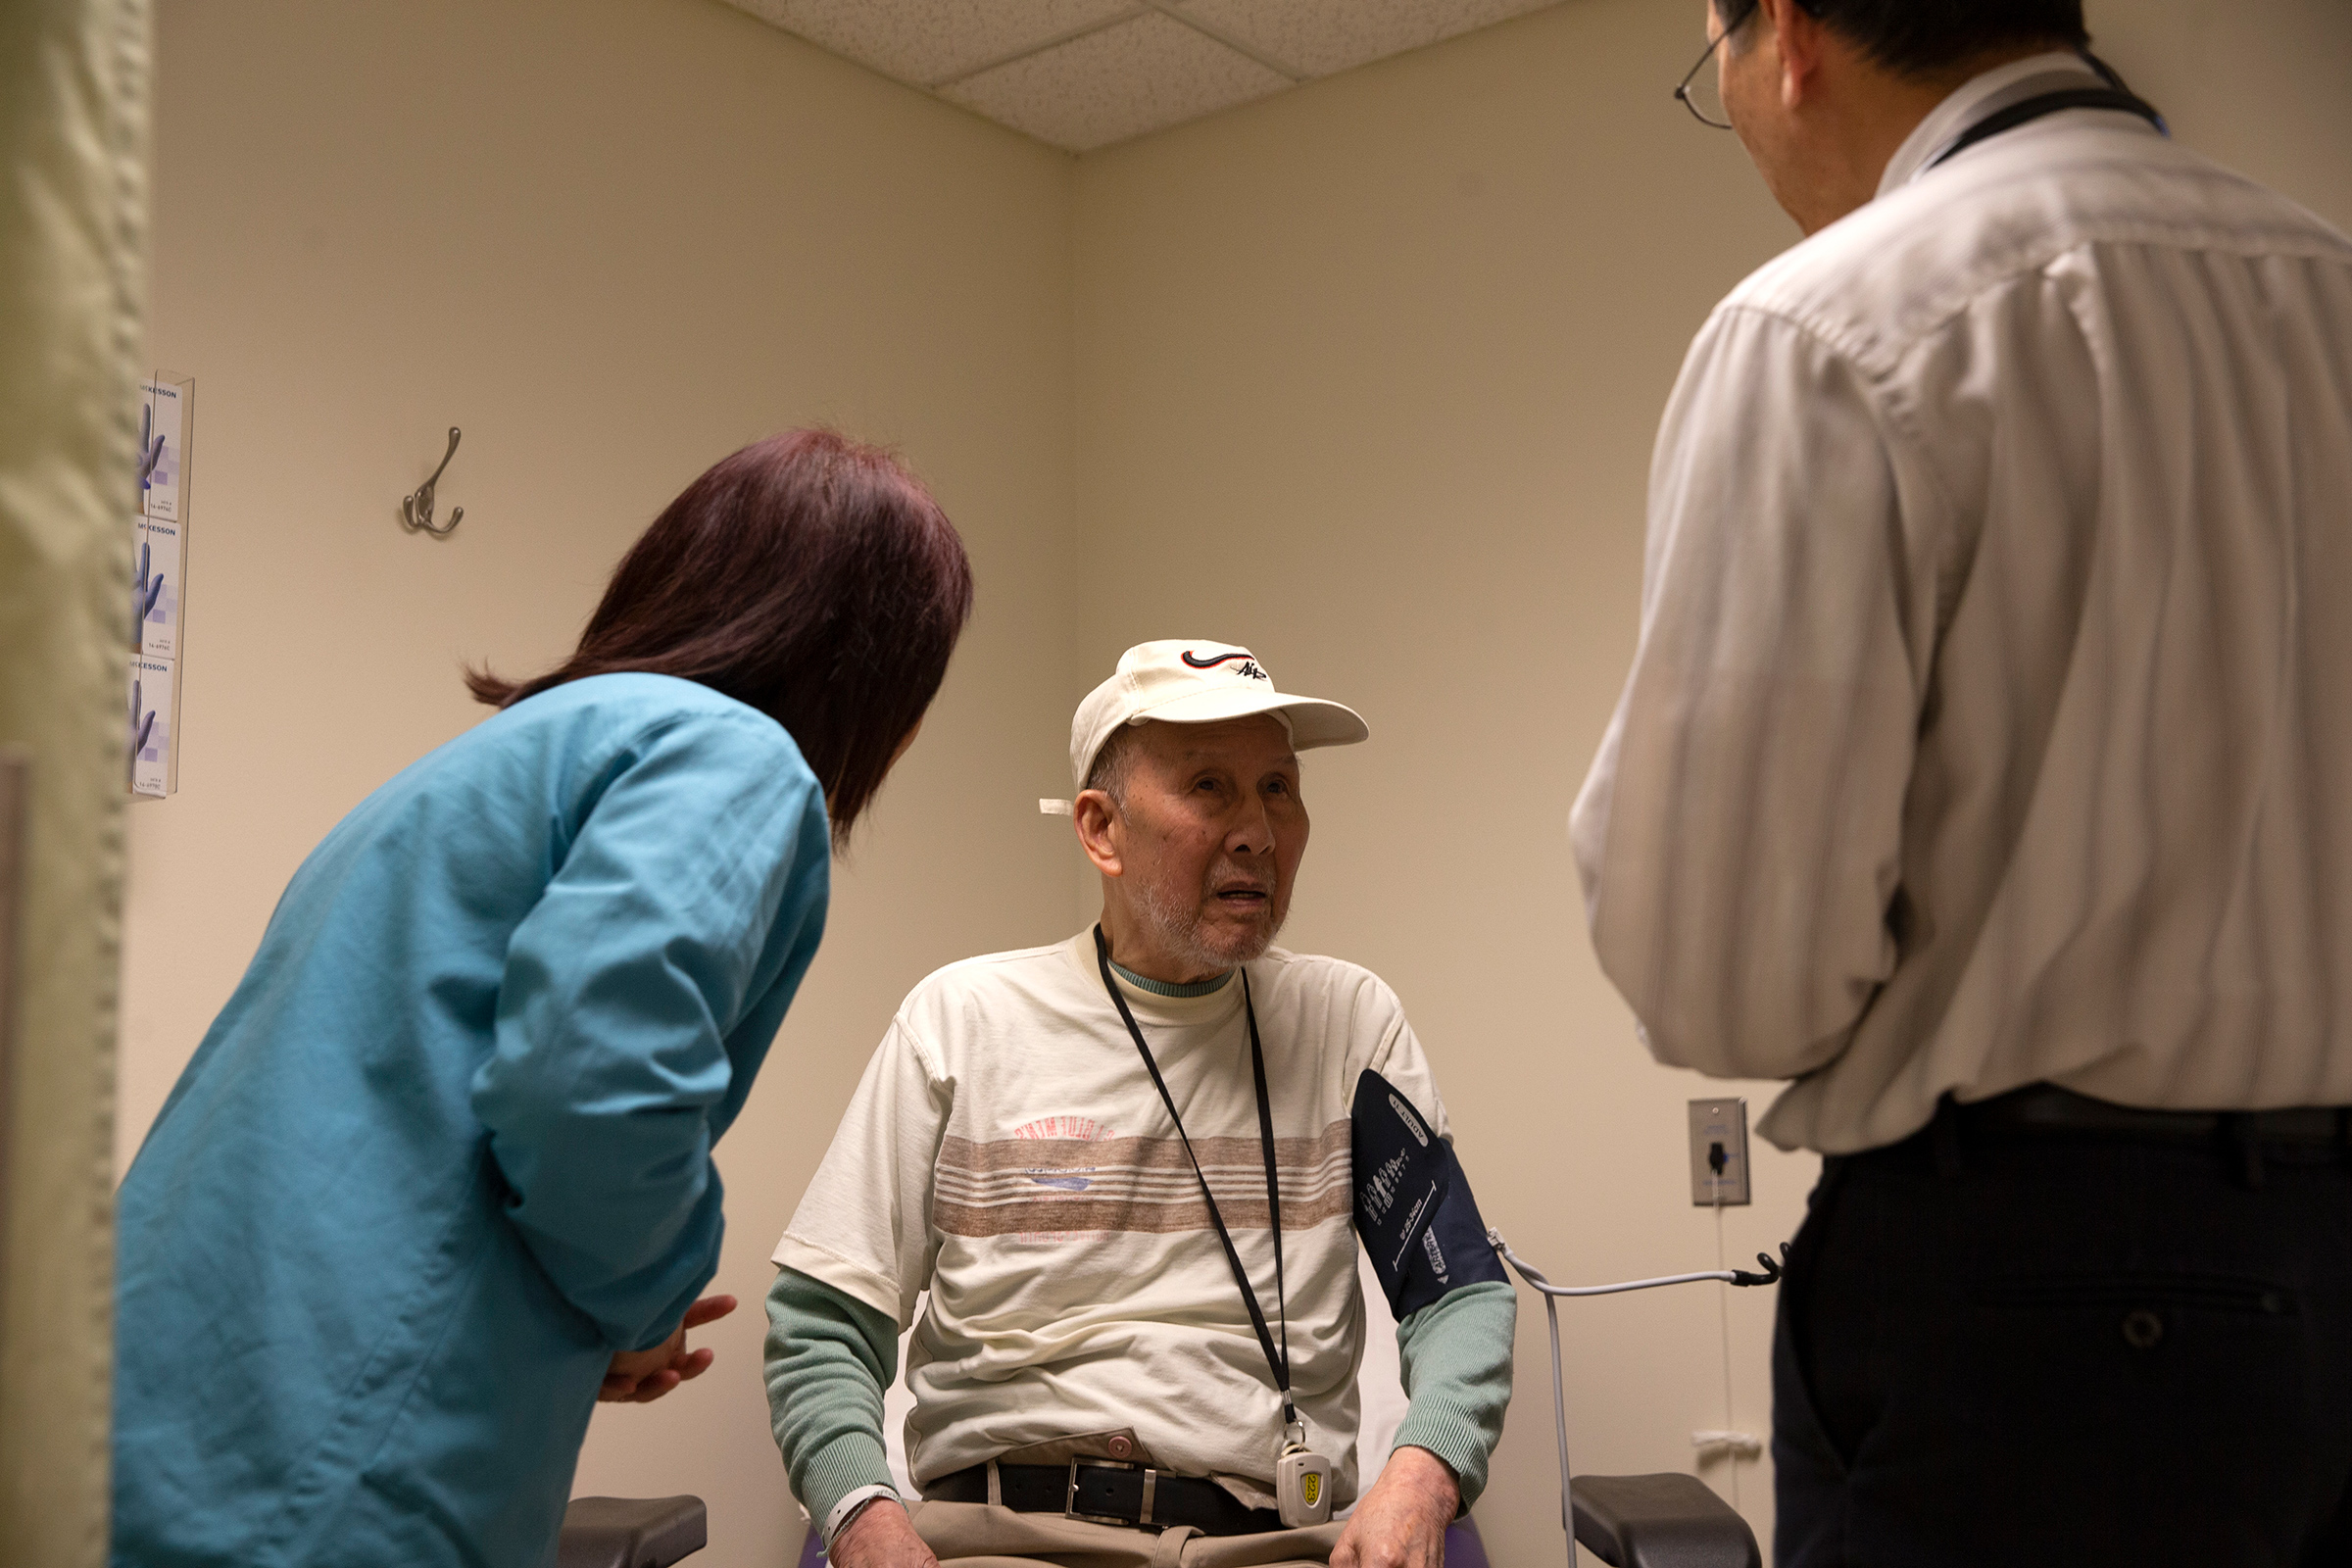 Bing Hong Liu (C) talks to to Dr. Alan Chun (R) through an interpreter at the International Community Health Services medical clinic in their assisted living facility, the Legacy House, on March 20 in Seattle.